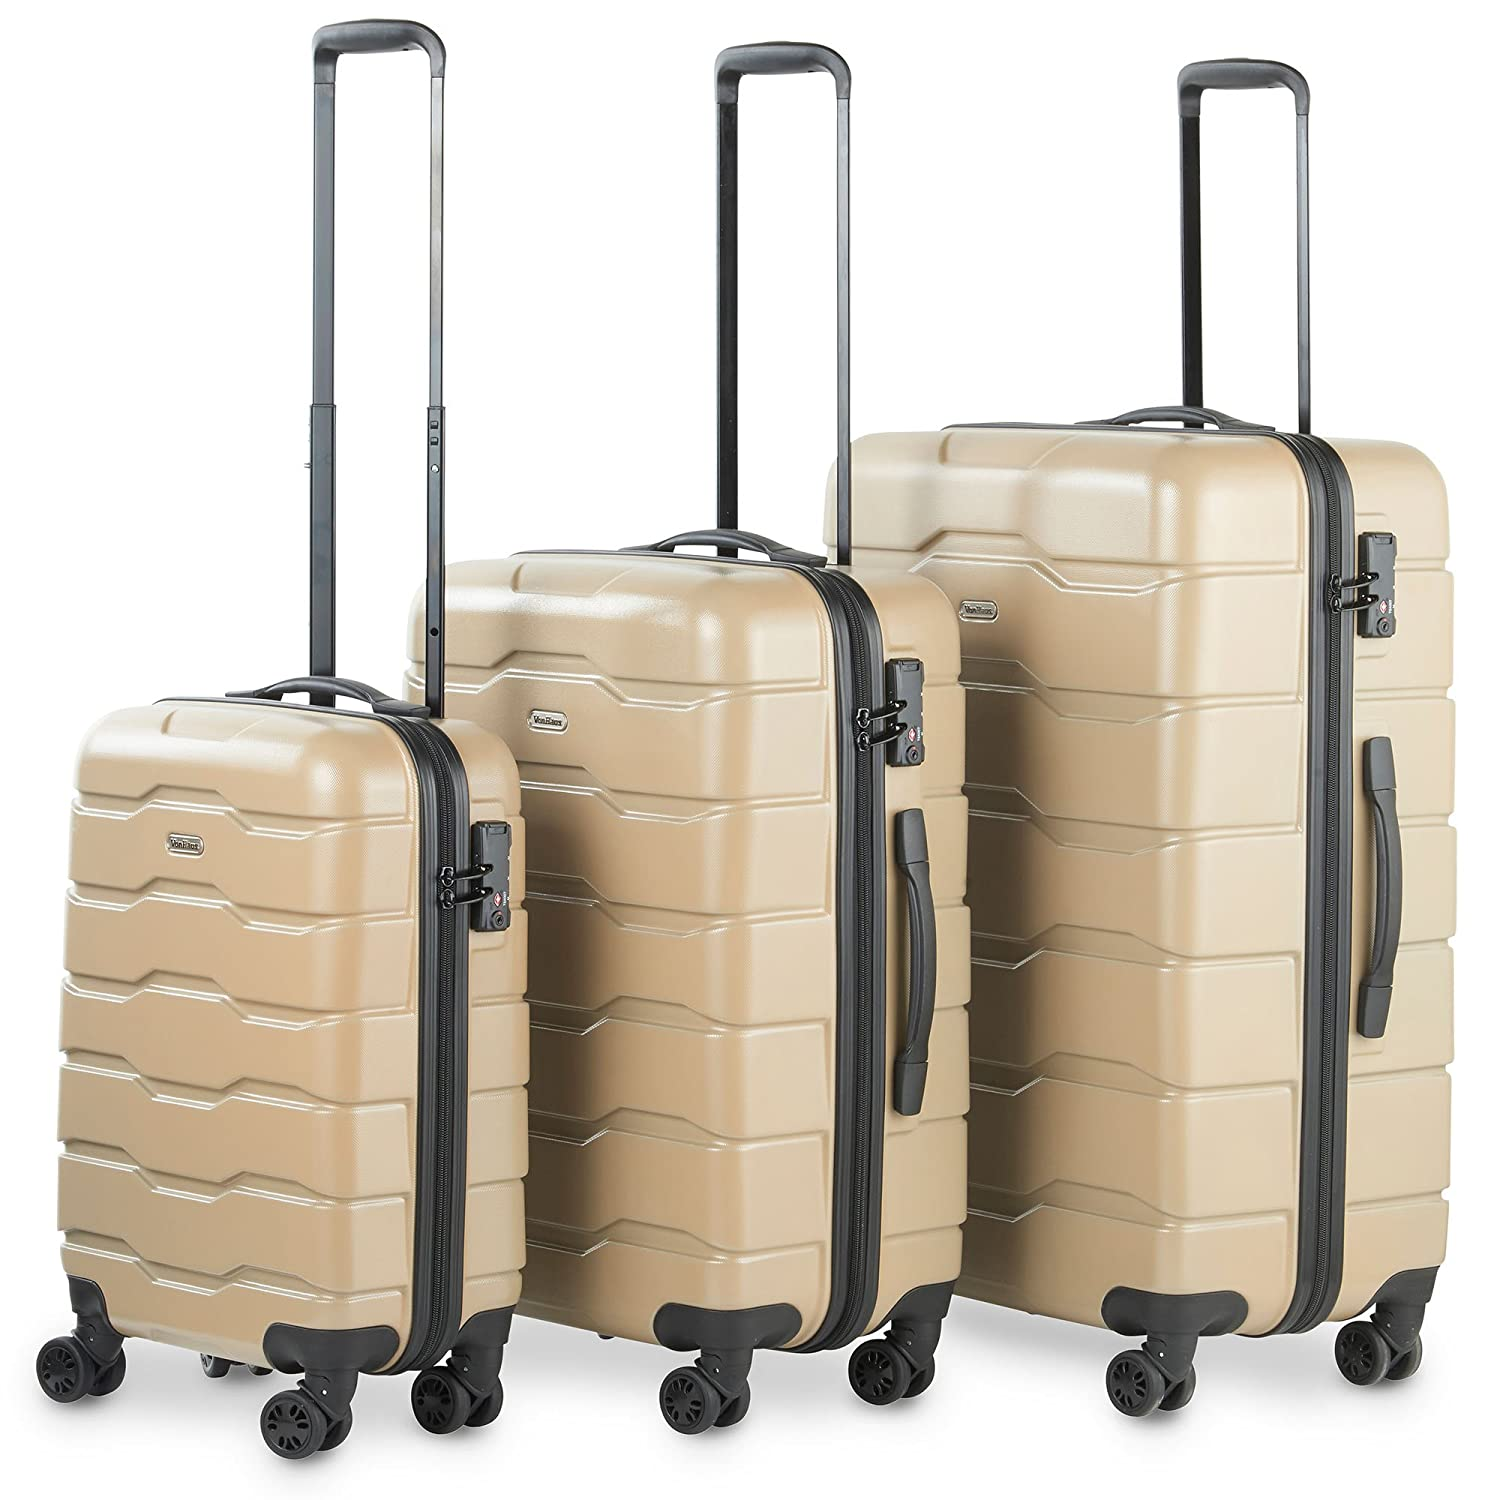 24f080e6e353 VonHaus Premium 3 Piece Lightweight Luggage Set – Hardshell with TSA  Integrated Lock, Spinner Rolling Wheels - Champagne